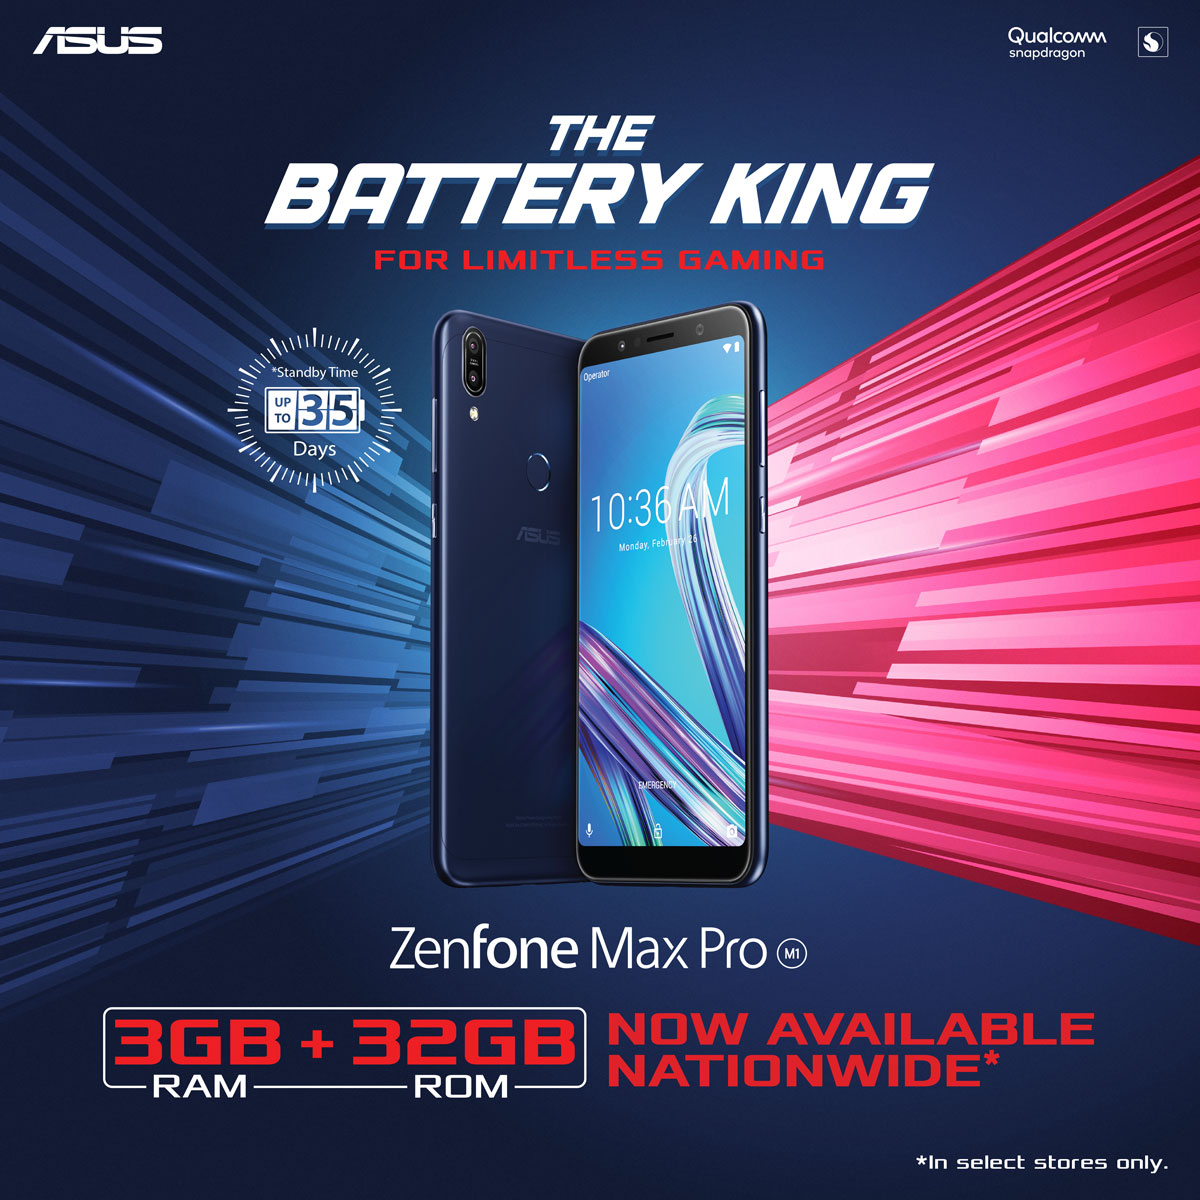 ZenFone Max Pro M1 - 3GB + 32GB Variant Now Available